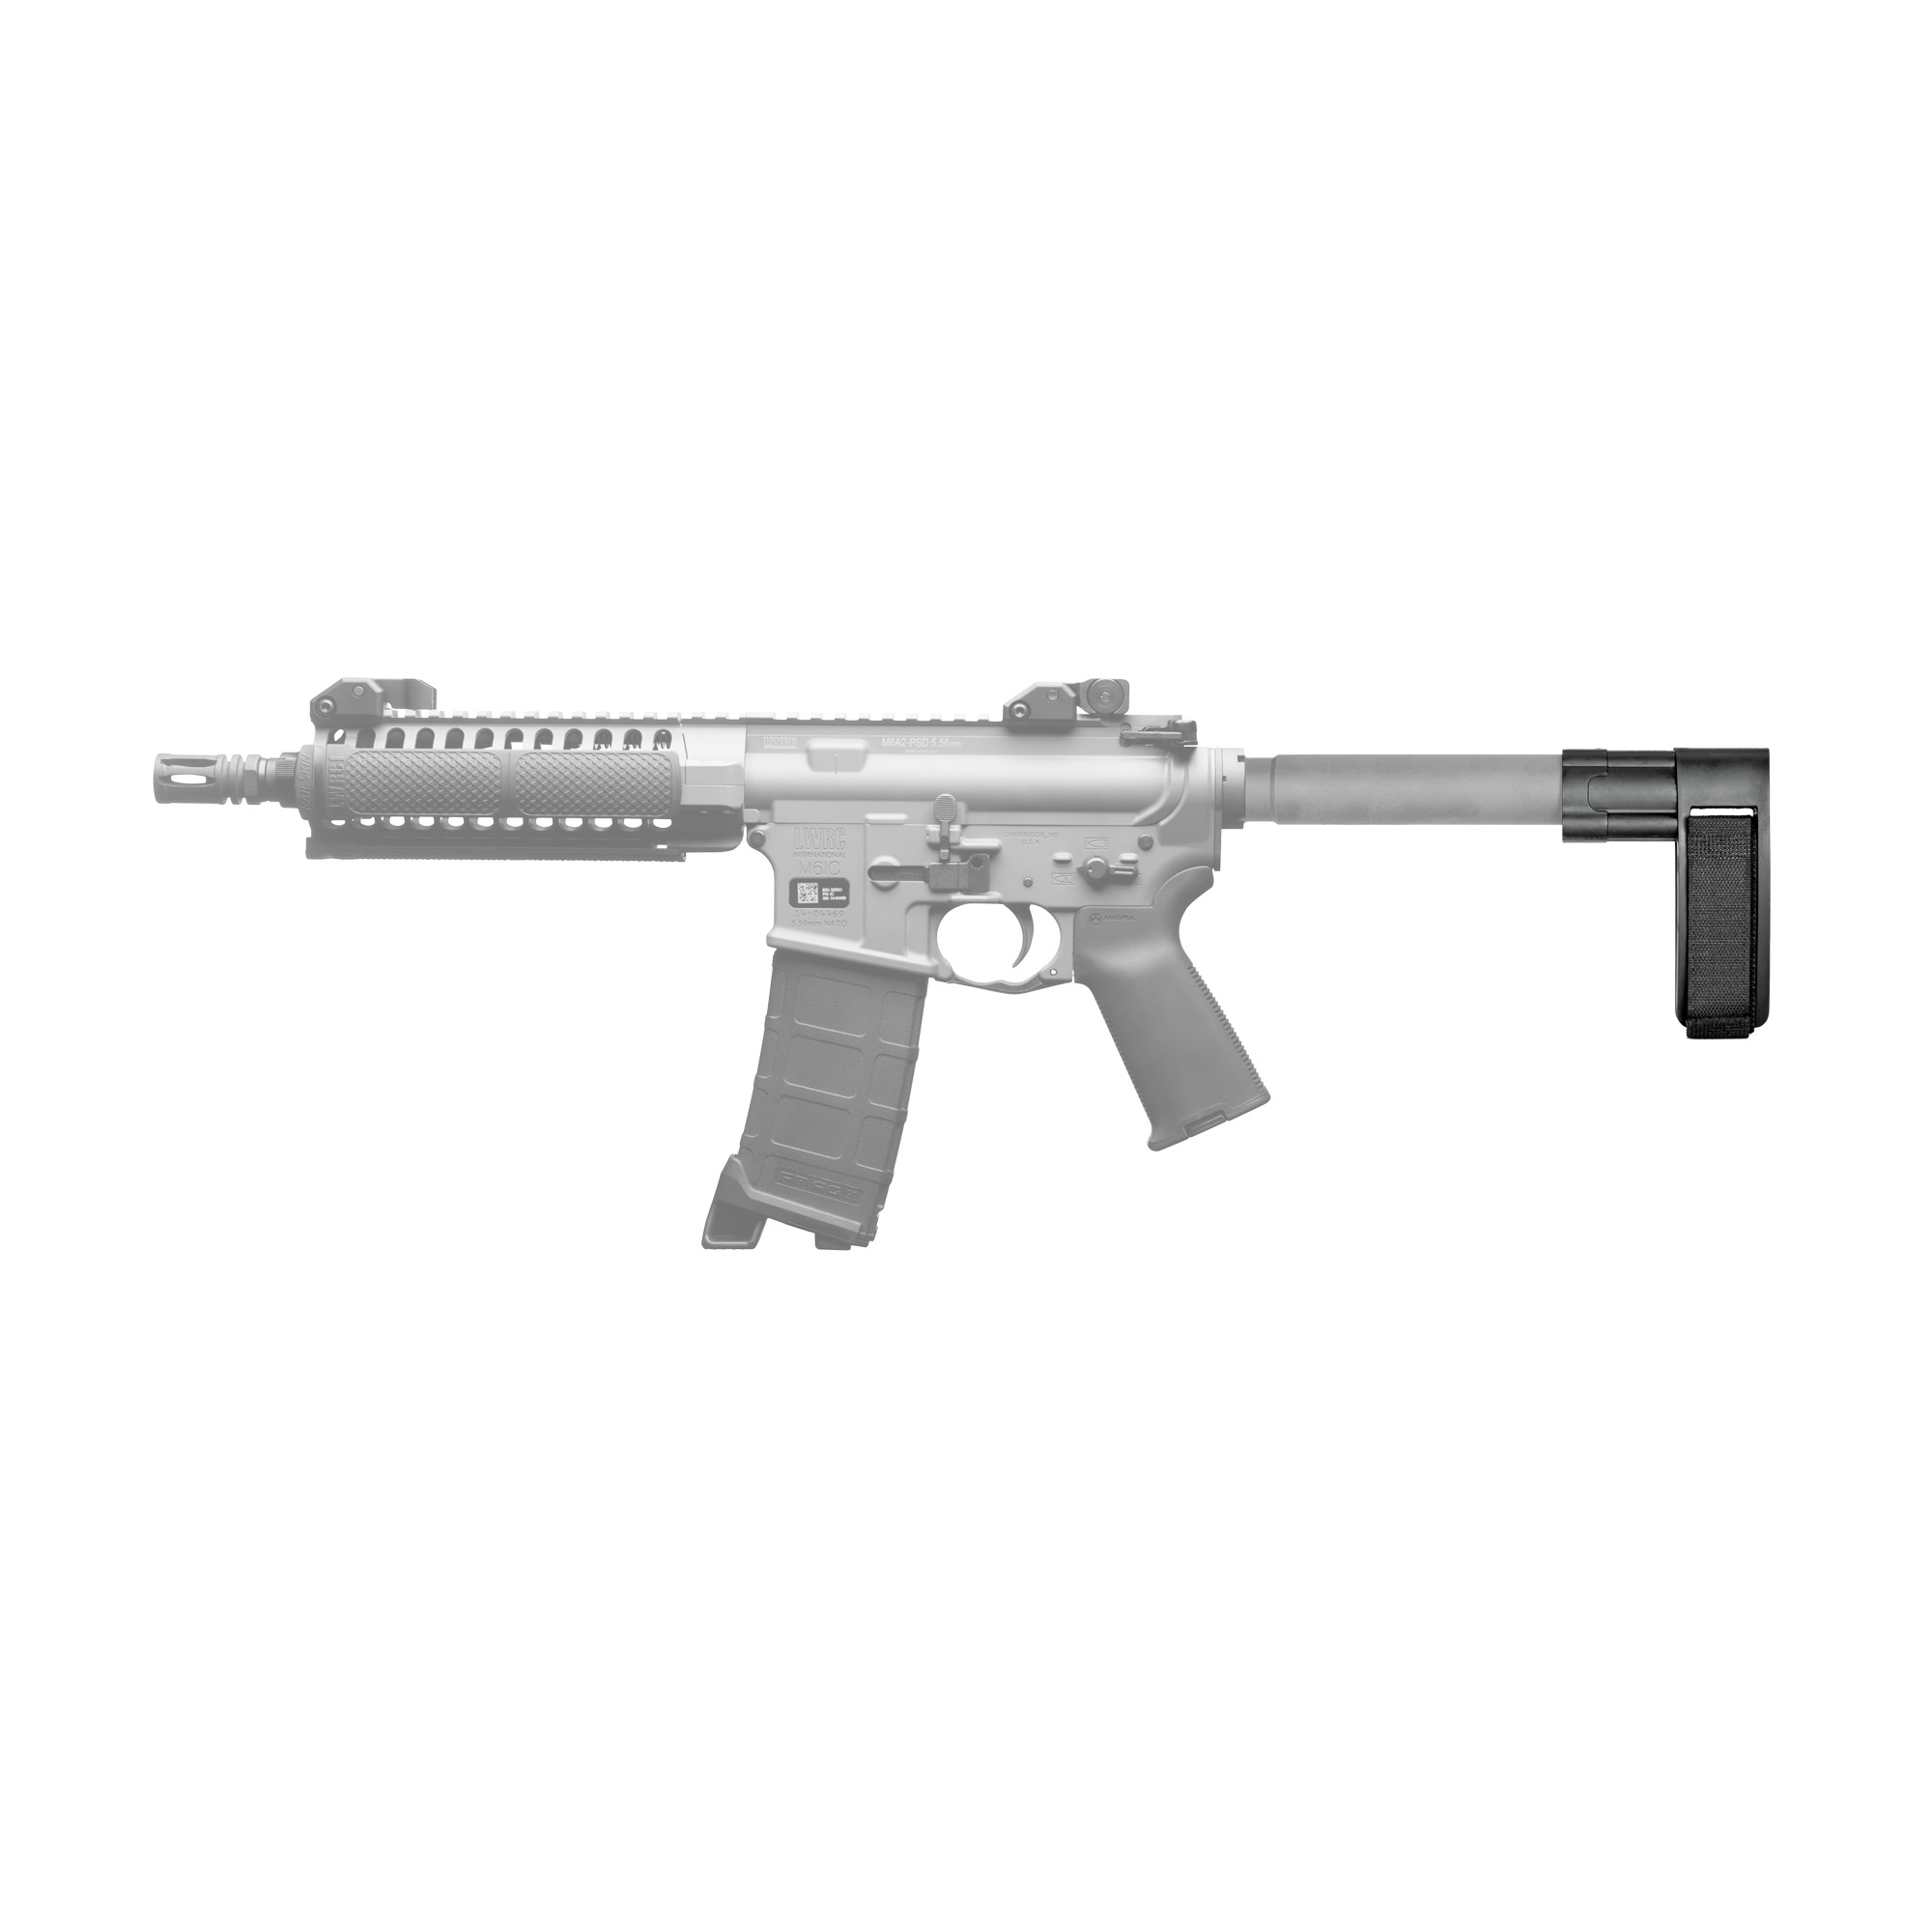 """The SB-MINI is the lightest"""" minimalist interpretation of the Pistol Stabilizing Brace. When weight and total footprint are a consideration"""" the SB-MINI is the solution. Fits AR rifles."""